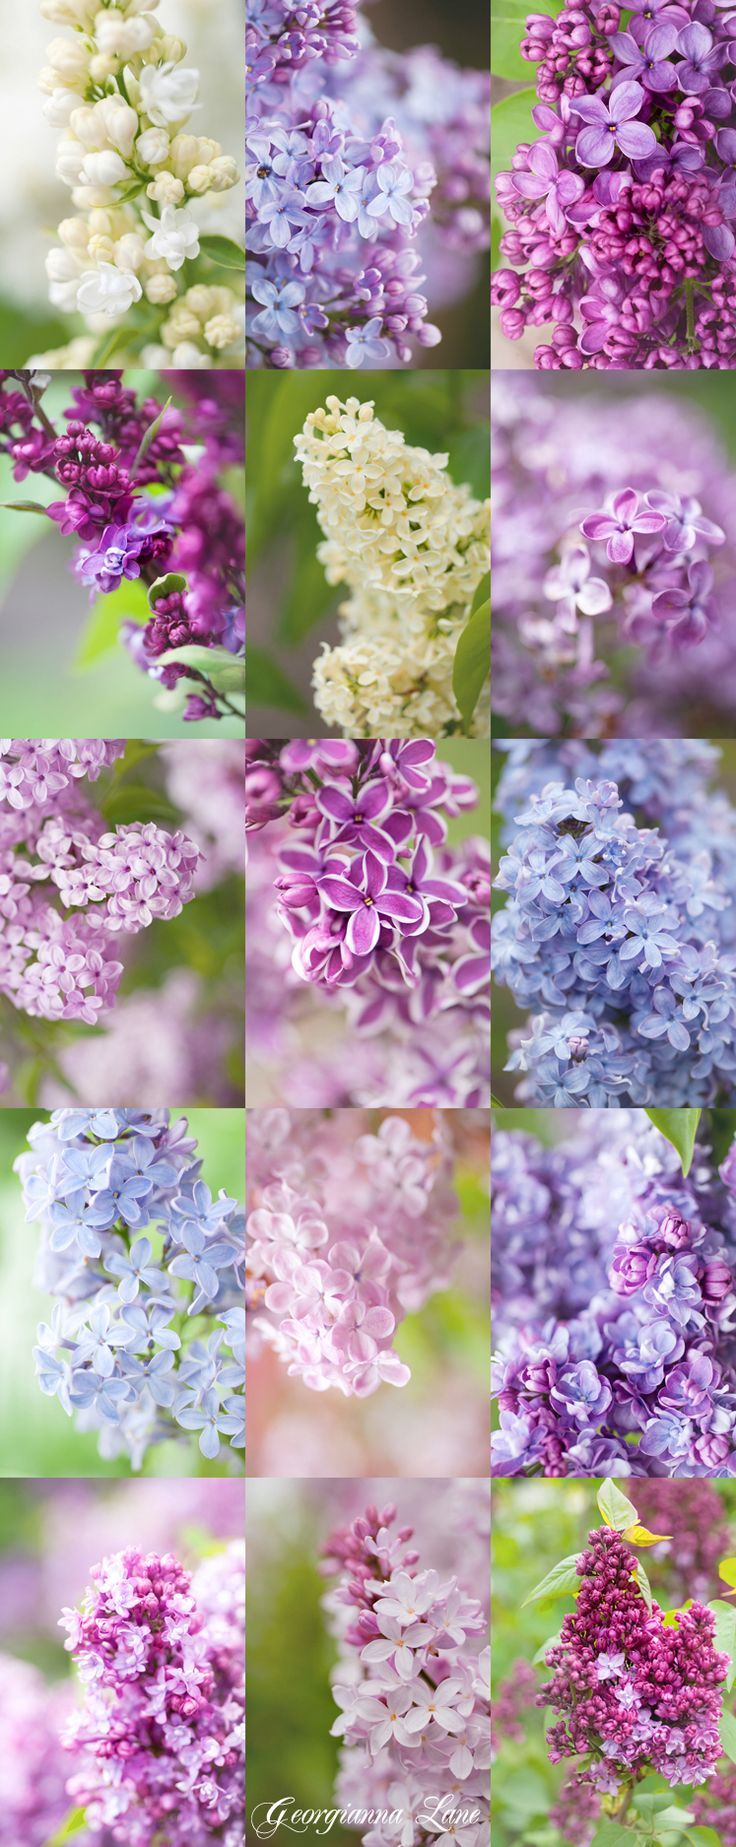 A Variety of Lilacs.